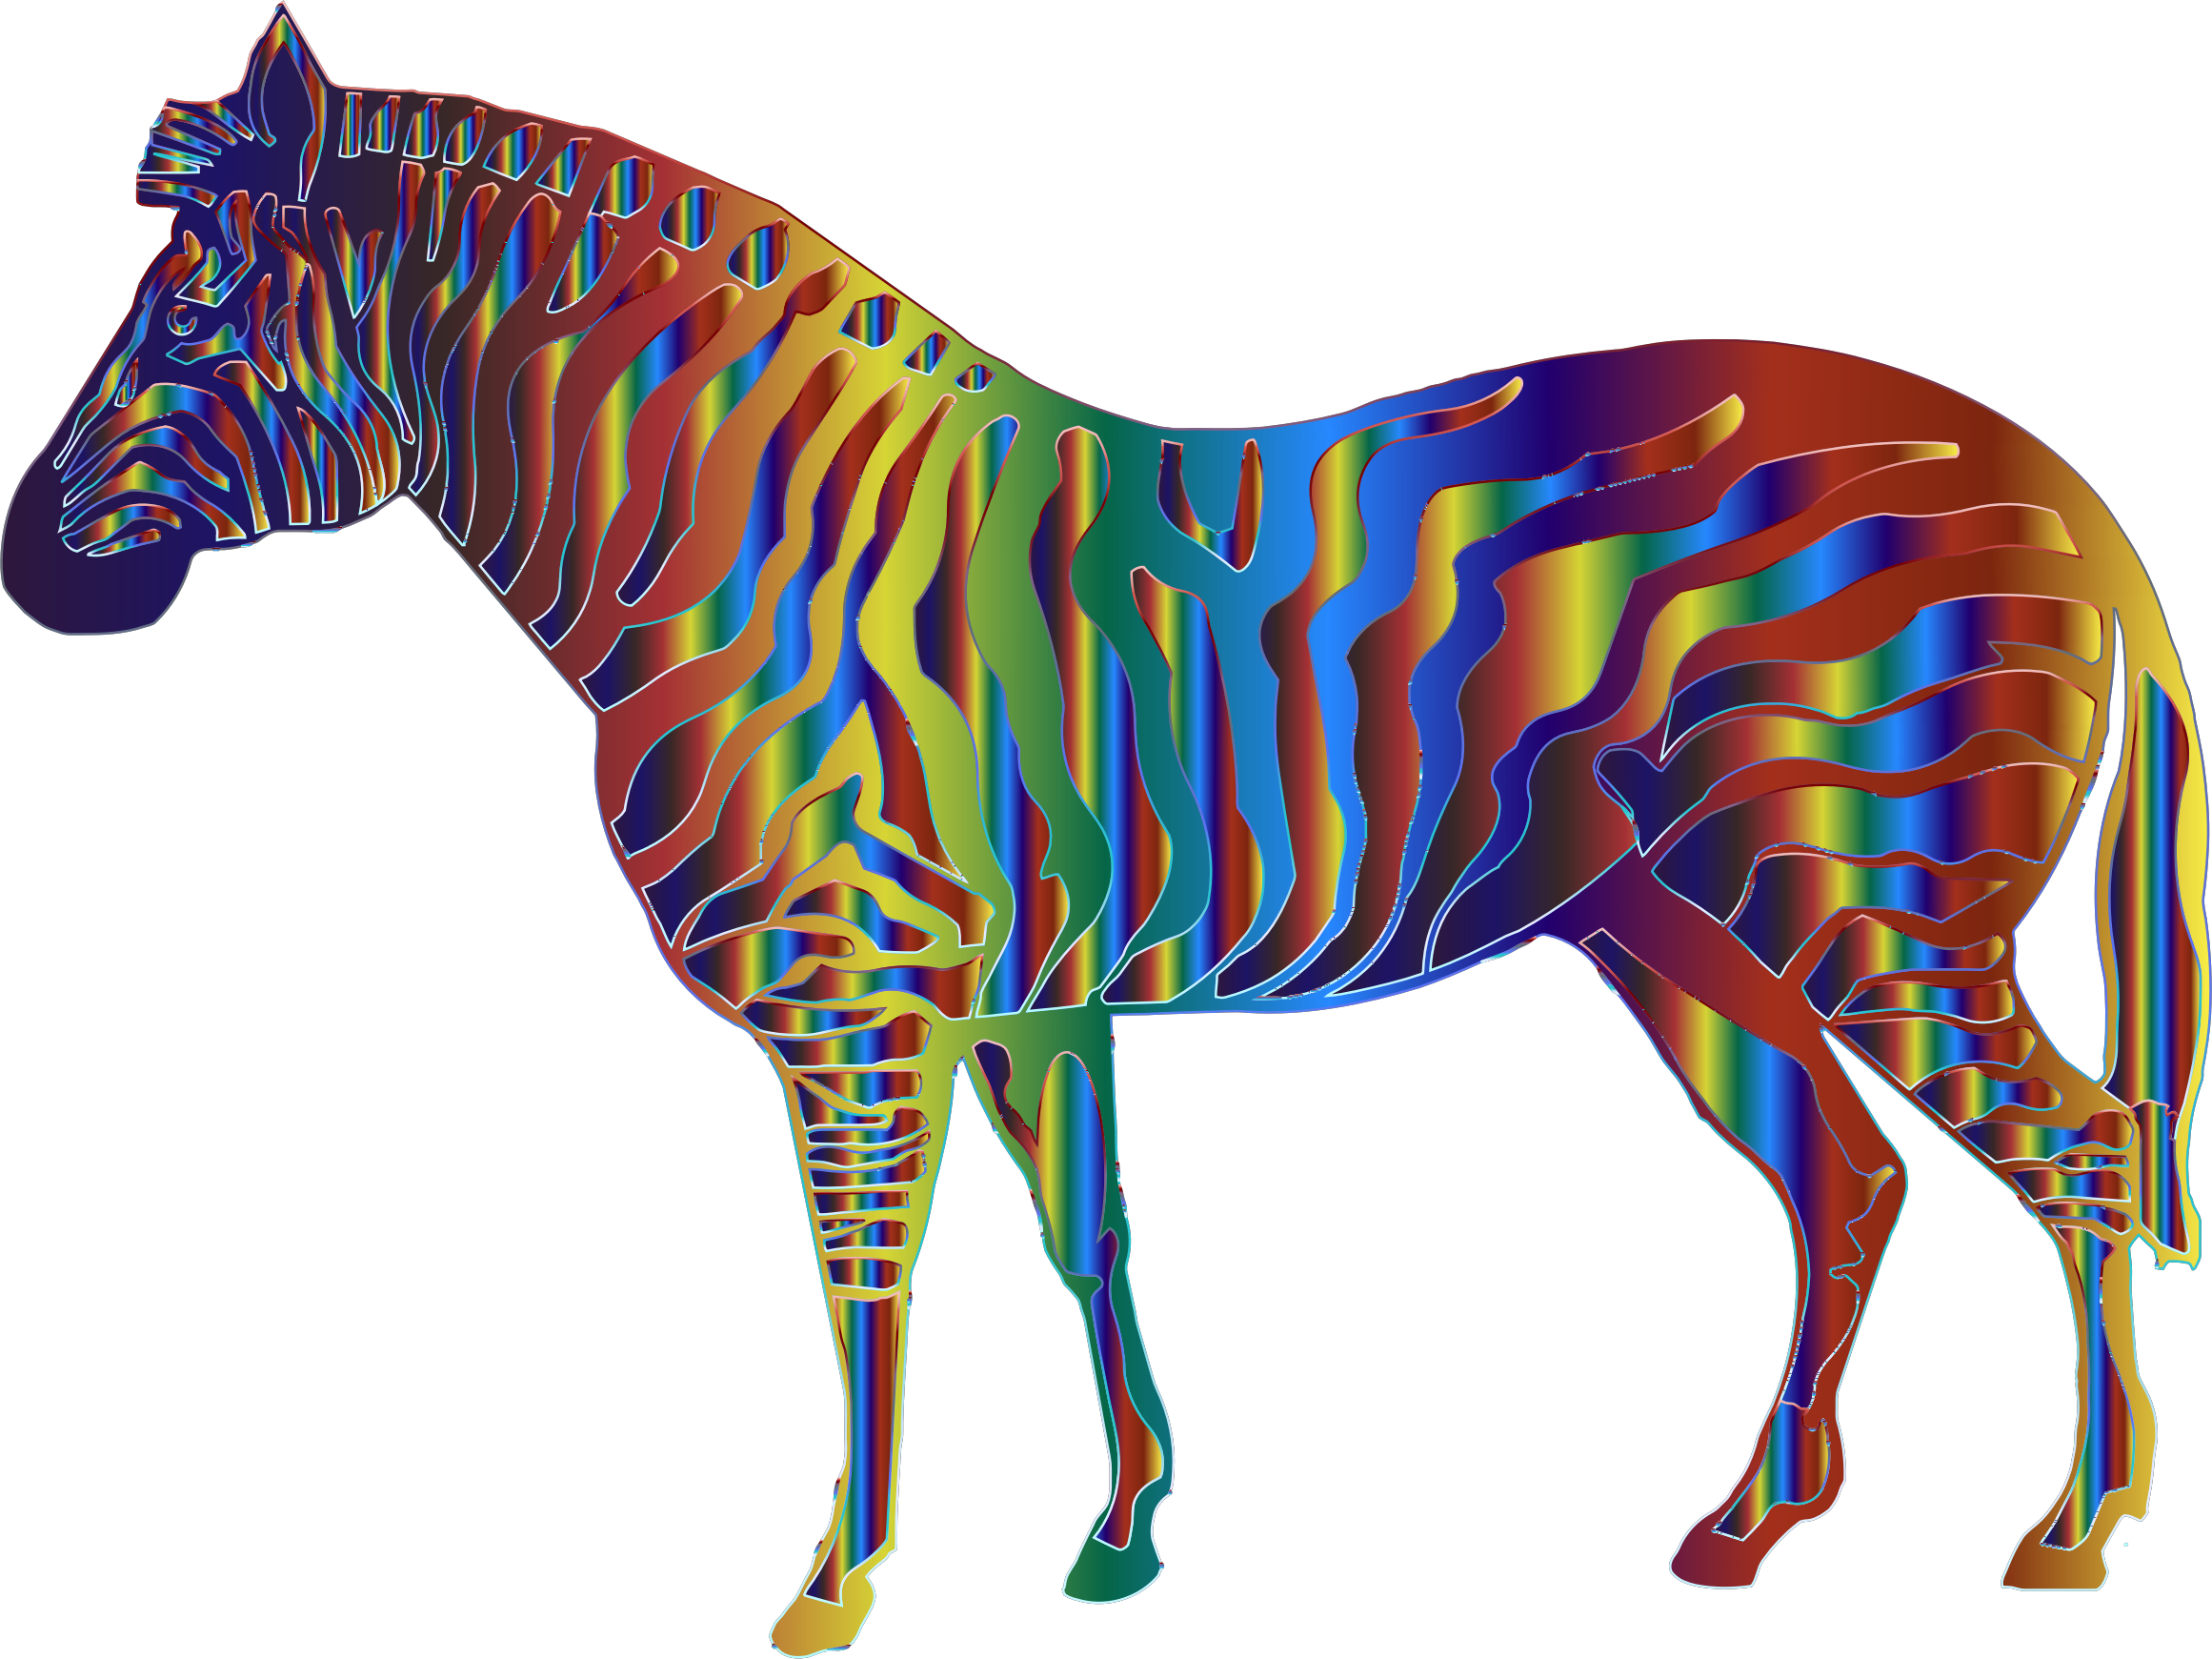 Iridescent Zebra by GDJ